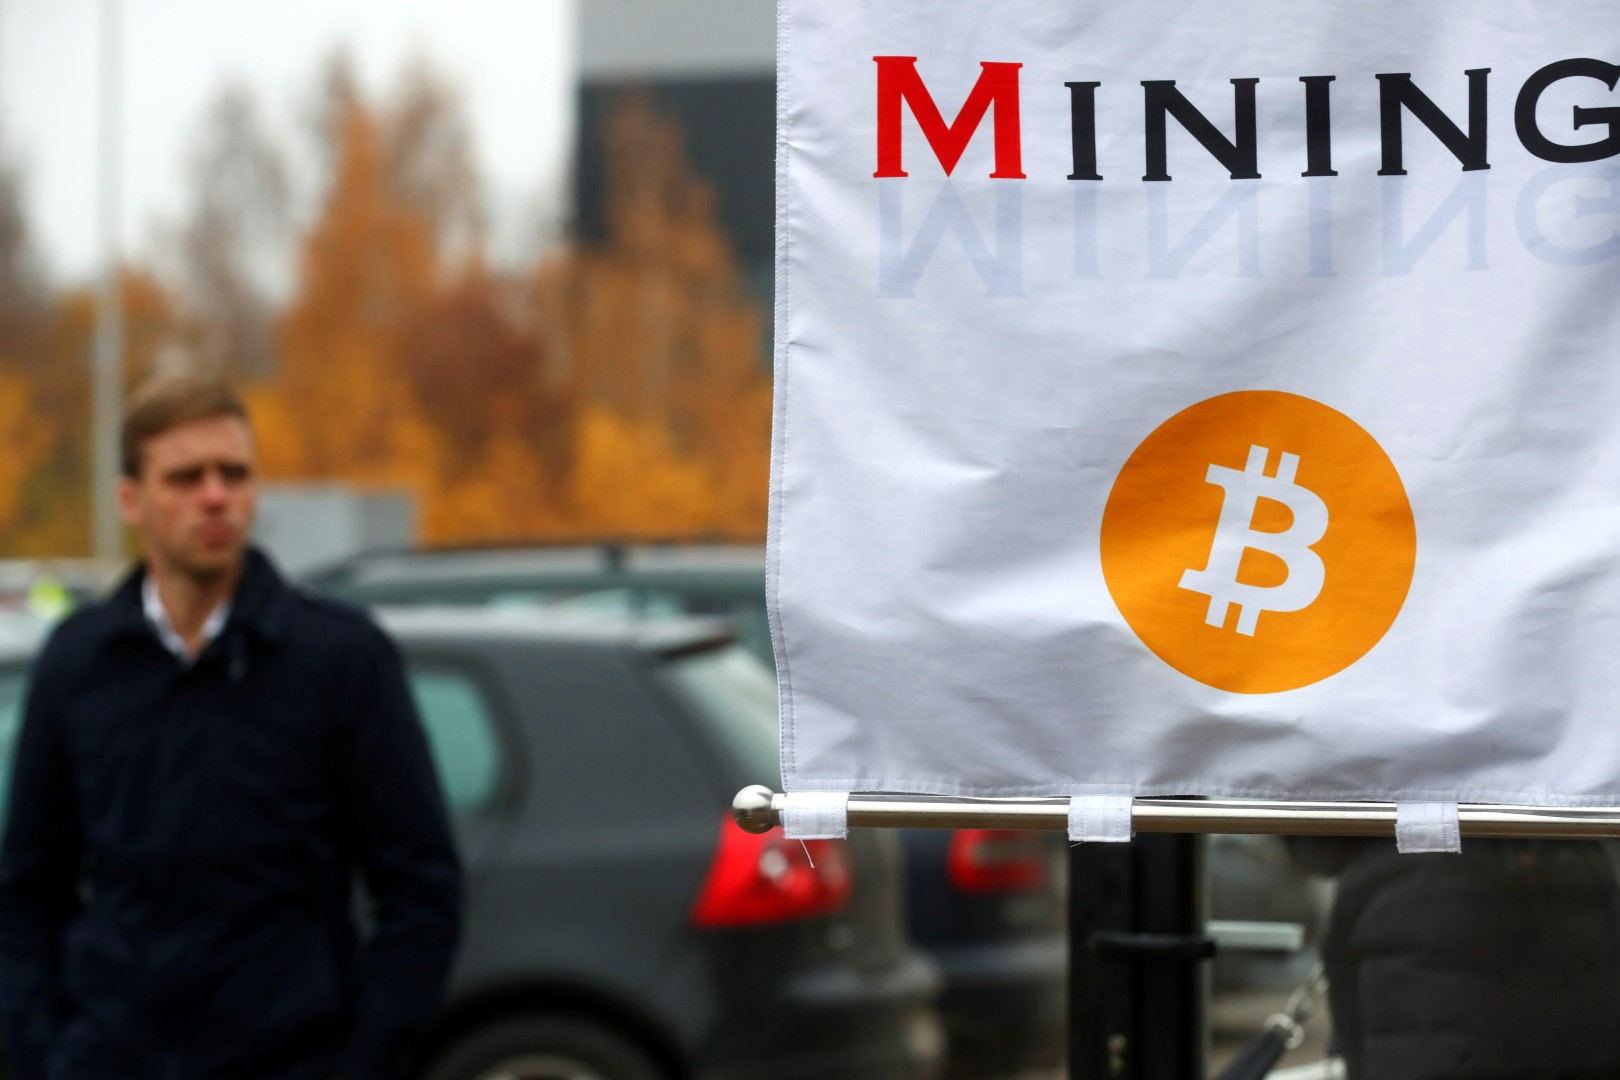 A man walks past bitcoin mininig show booth during Riga Comm 2017, a business technology and innovation fair in Riga, Latvia November 9, 2017. REUTERS/Ints Kalnins - RC1389CD3A20